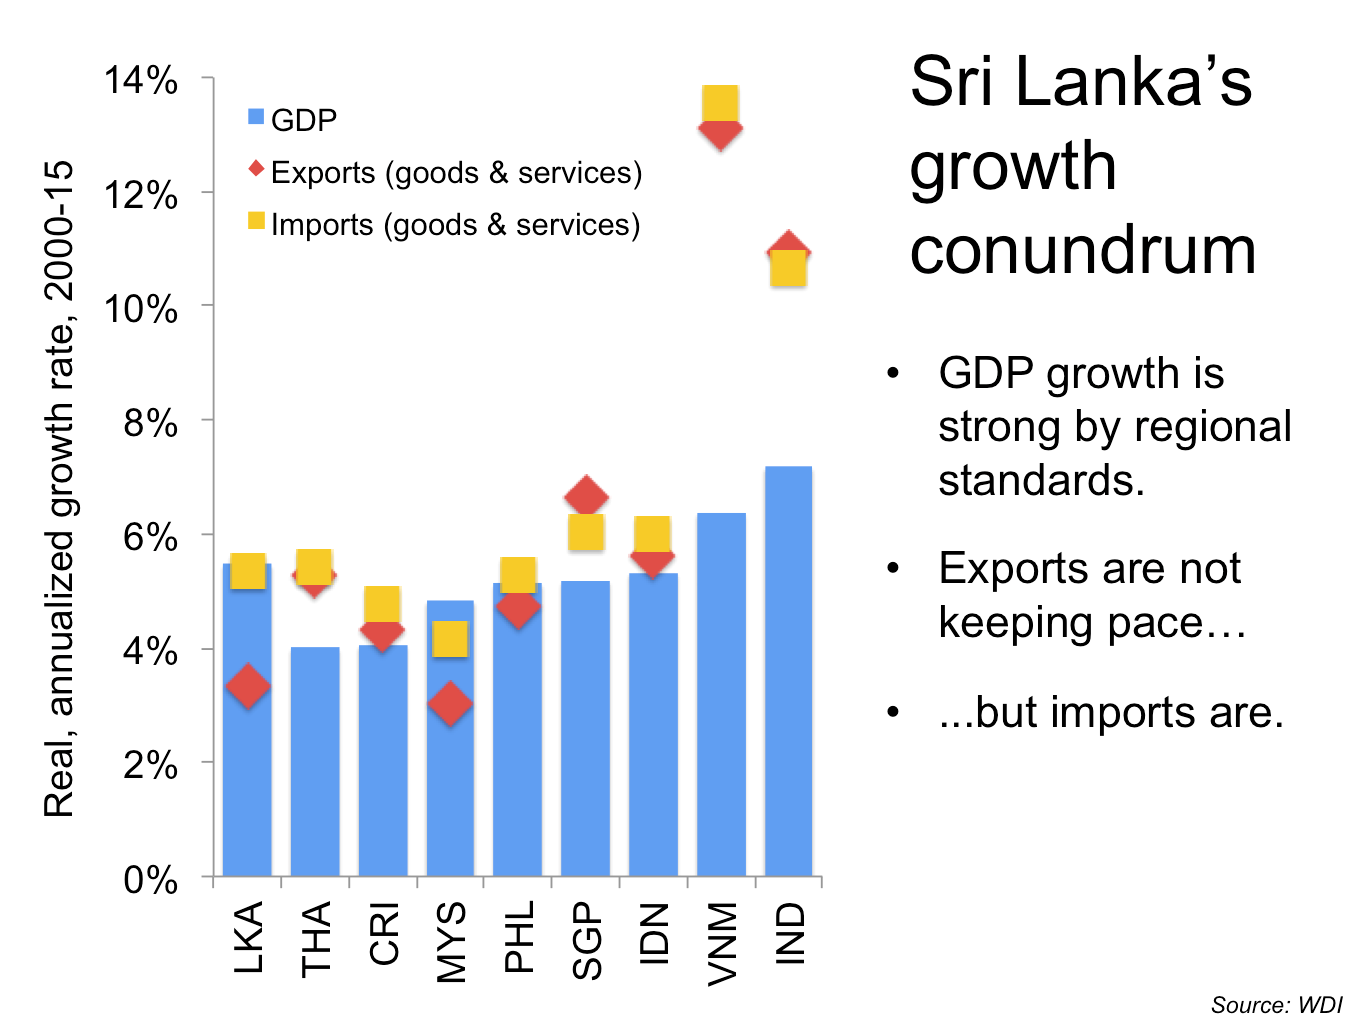 Sri Lanka's Growth Conundrum